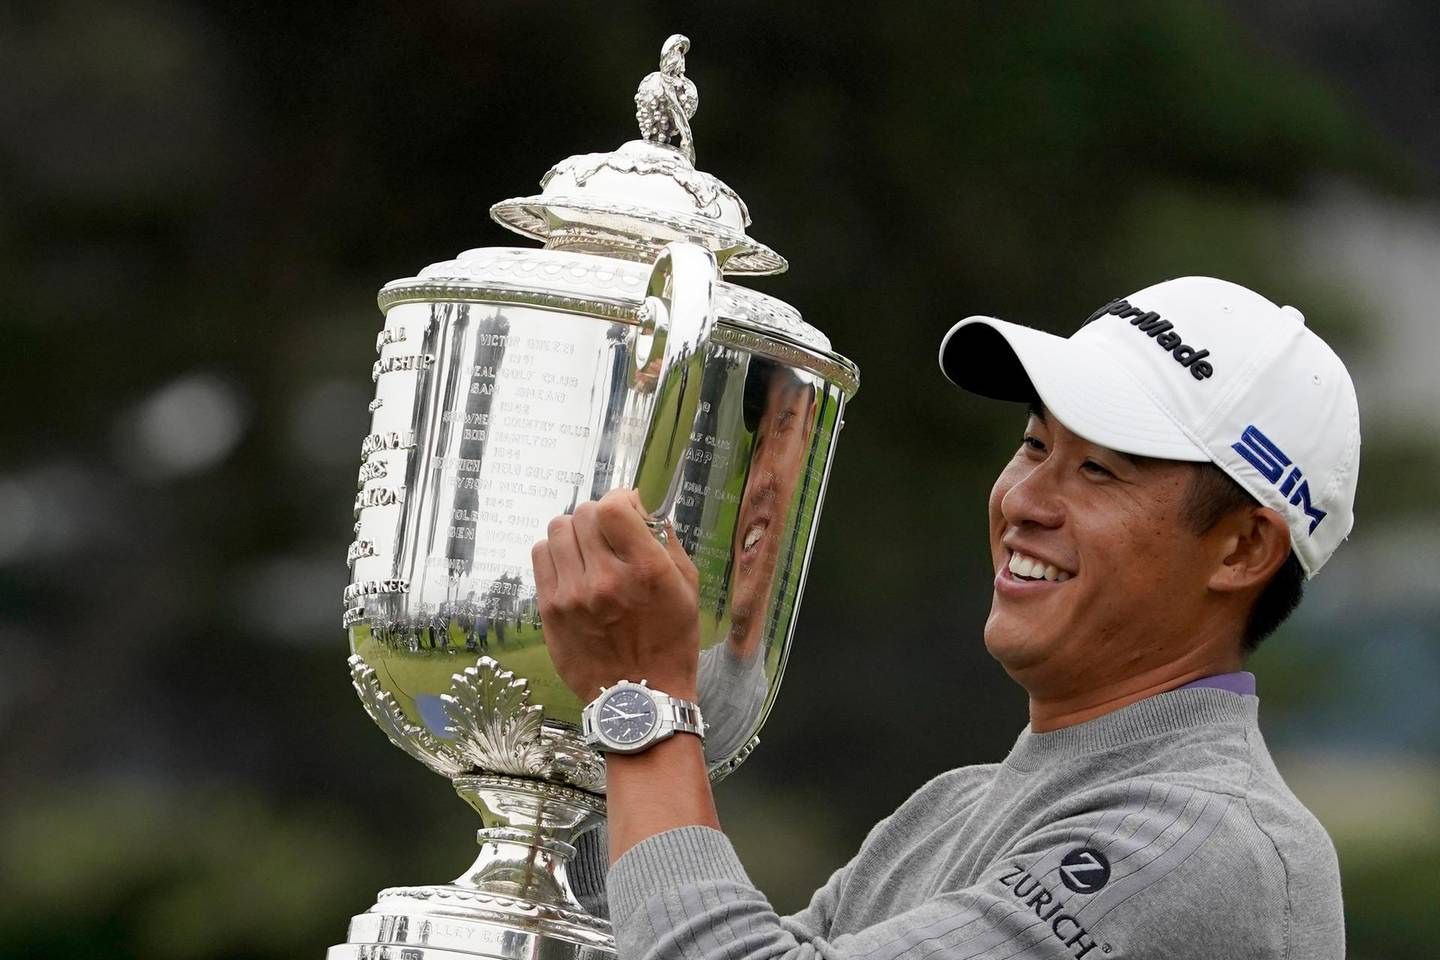 FILE - Collin Morikawa holds the Wanamaker Trophy after winning the PGA Championship golf tournament at TPC Harding Park in San Francisco, in this Sunday, Aug. 9, 2020, file photo. Morikawa was an example of another youth movement when he won his first major at age 23. (AP Photo/Charlie Riedel, File)